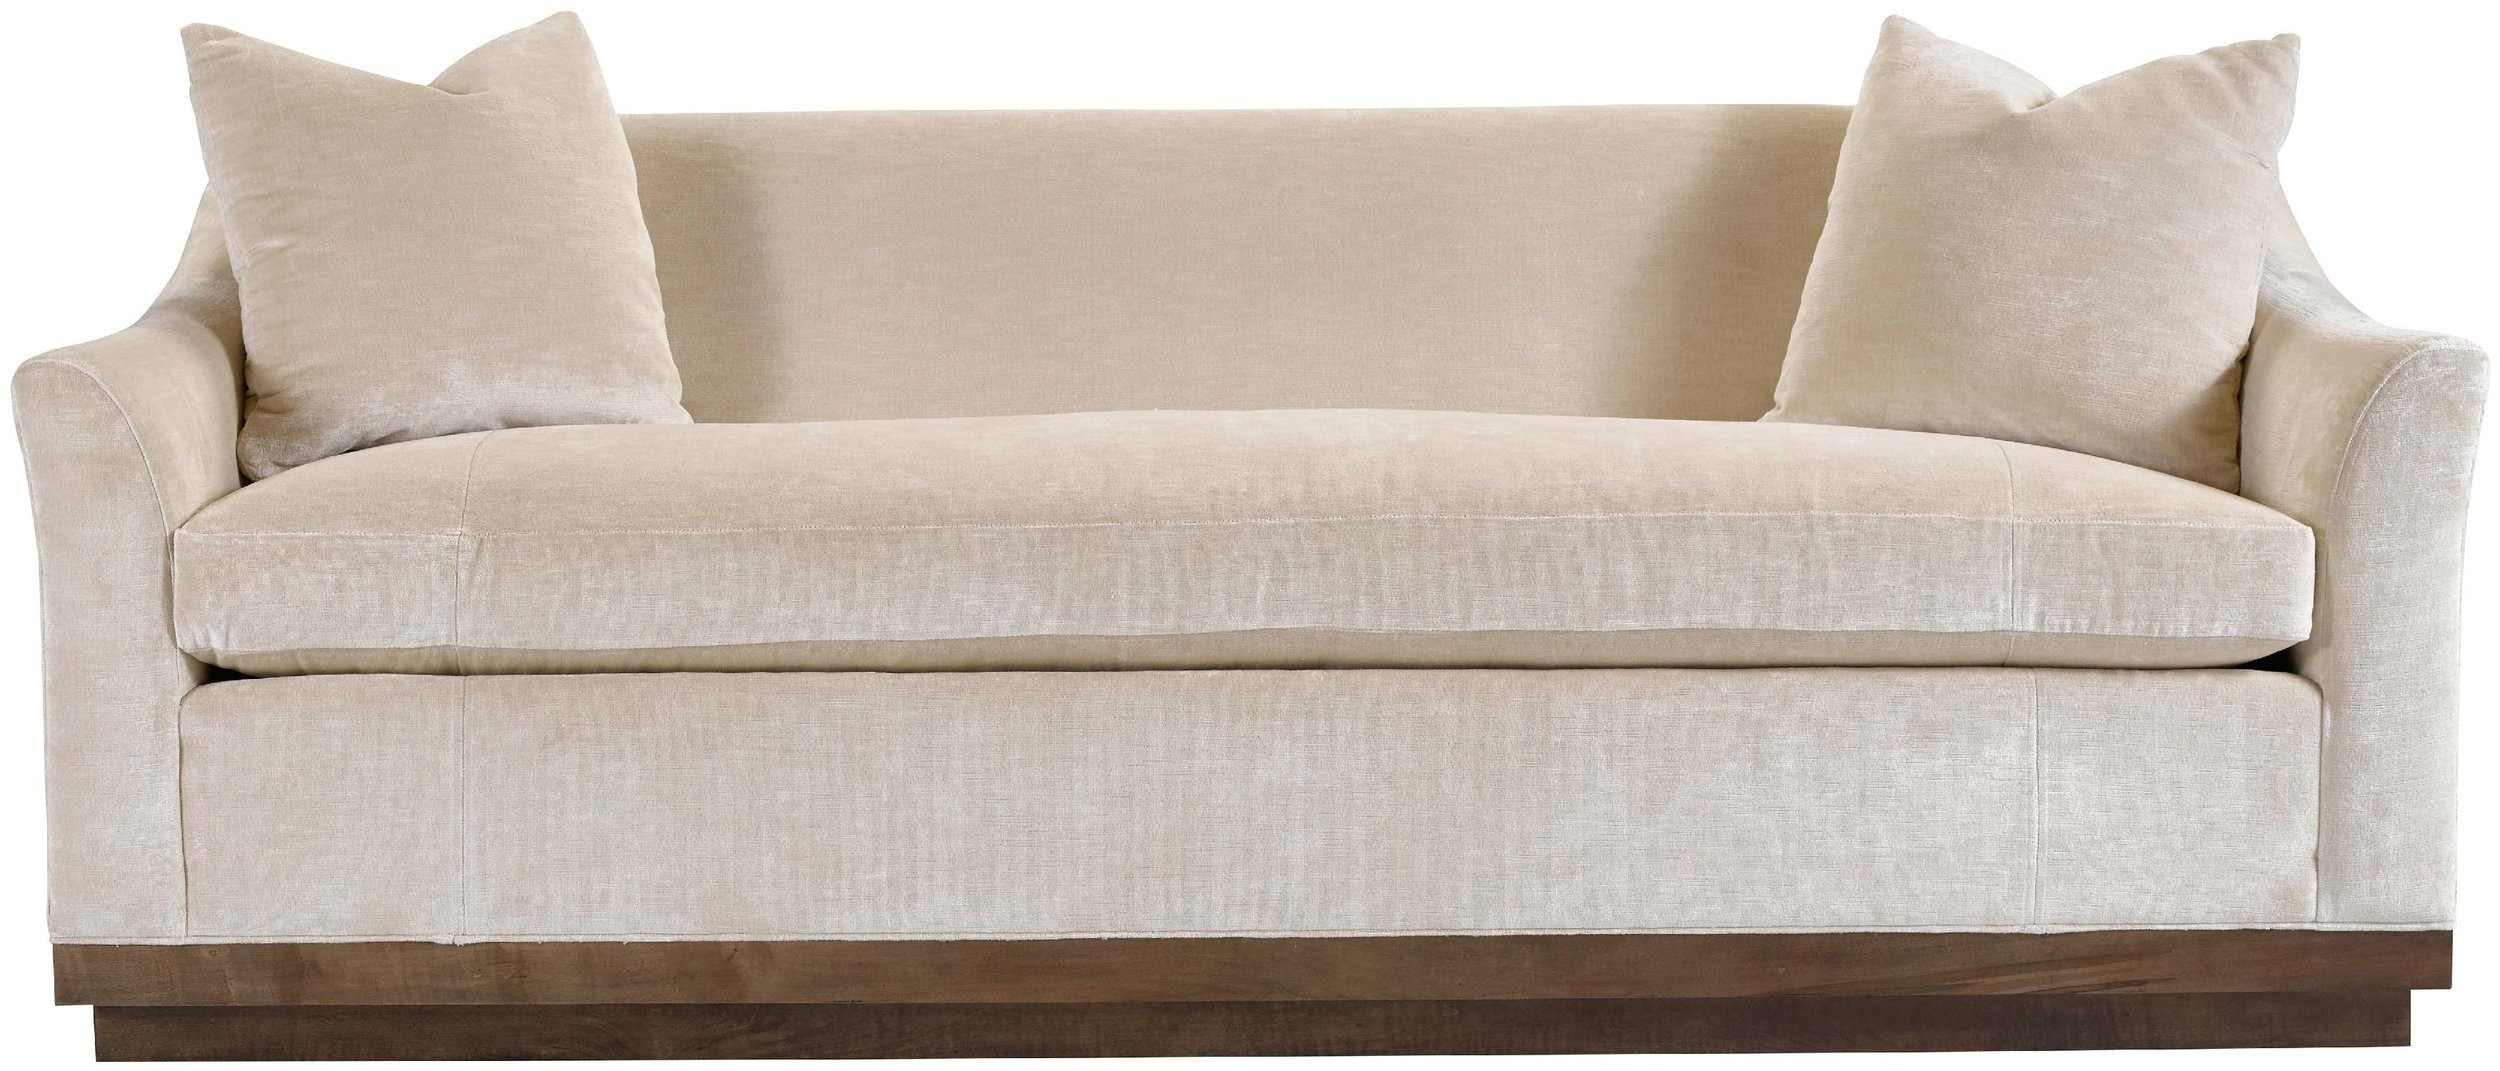 Hickory Chair sofa Awesome Inspirational Hickory Chair sofa S Ideas